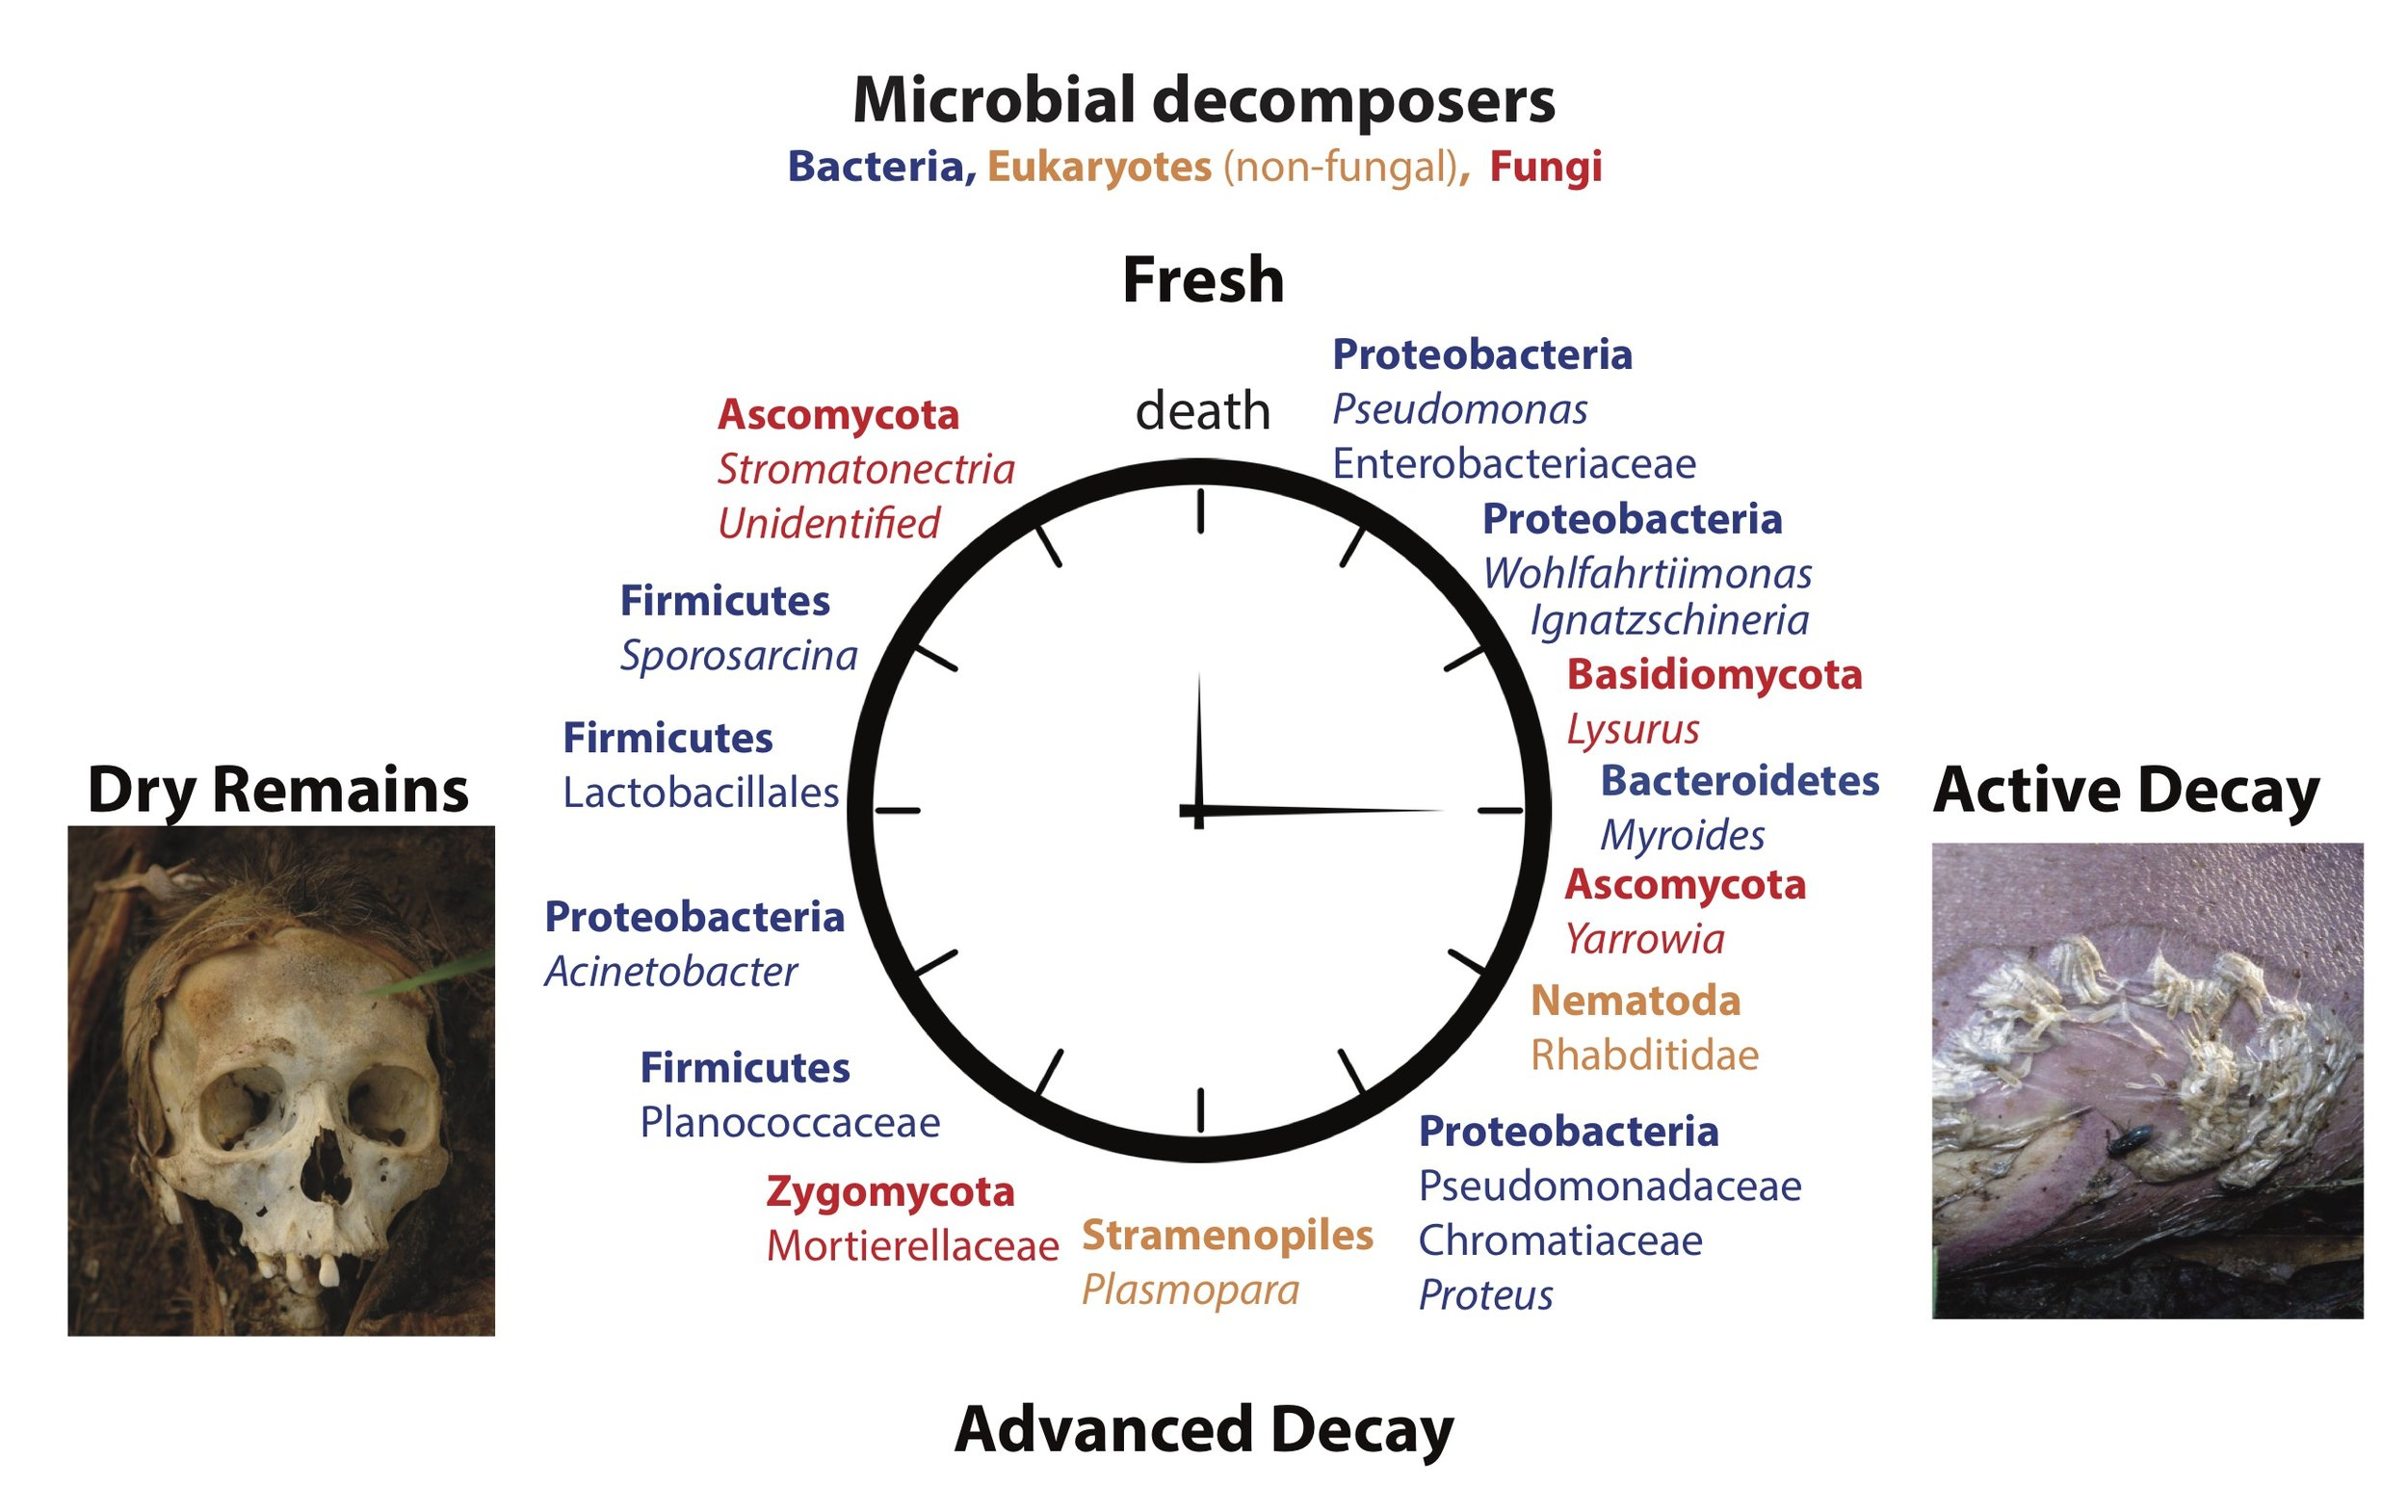 Microbial Clock of death - We are developing a new forensic tool that uses bacteria, fungi and other microorganisms to estimate how long a person has been dead.